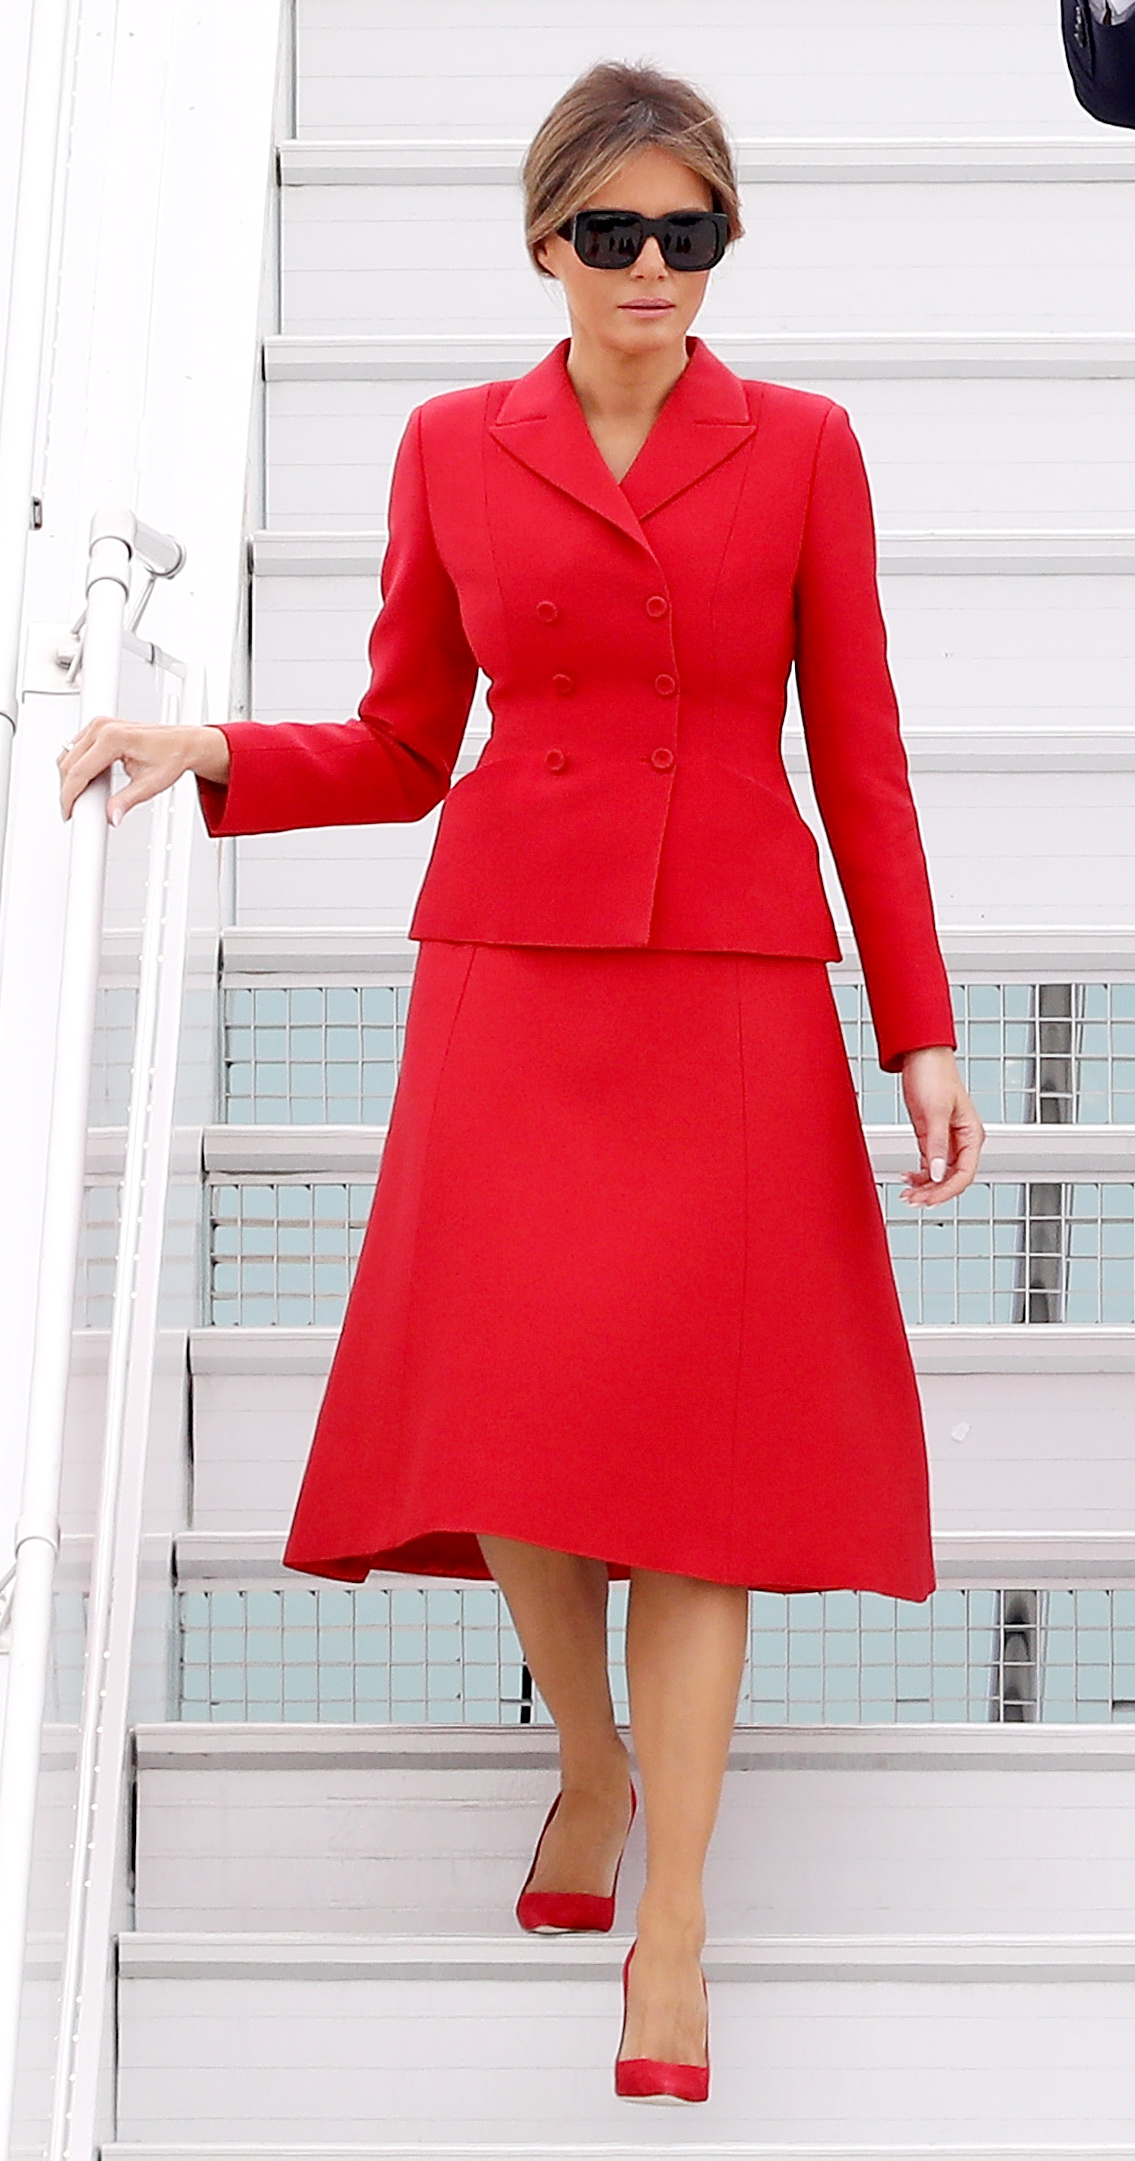 Melania Trump Wears Red Dior Skirt Suit to Meet the First Lady of France